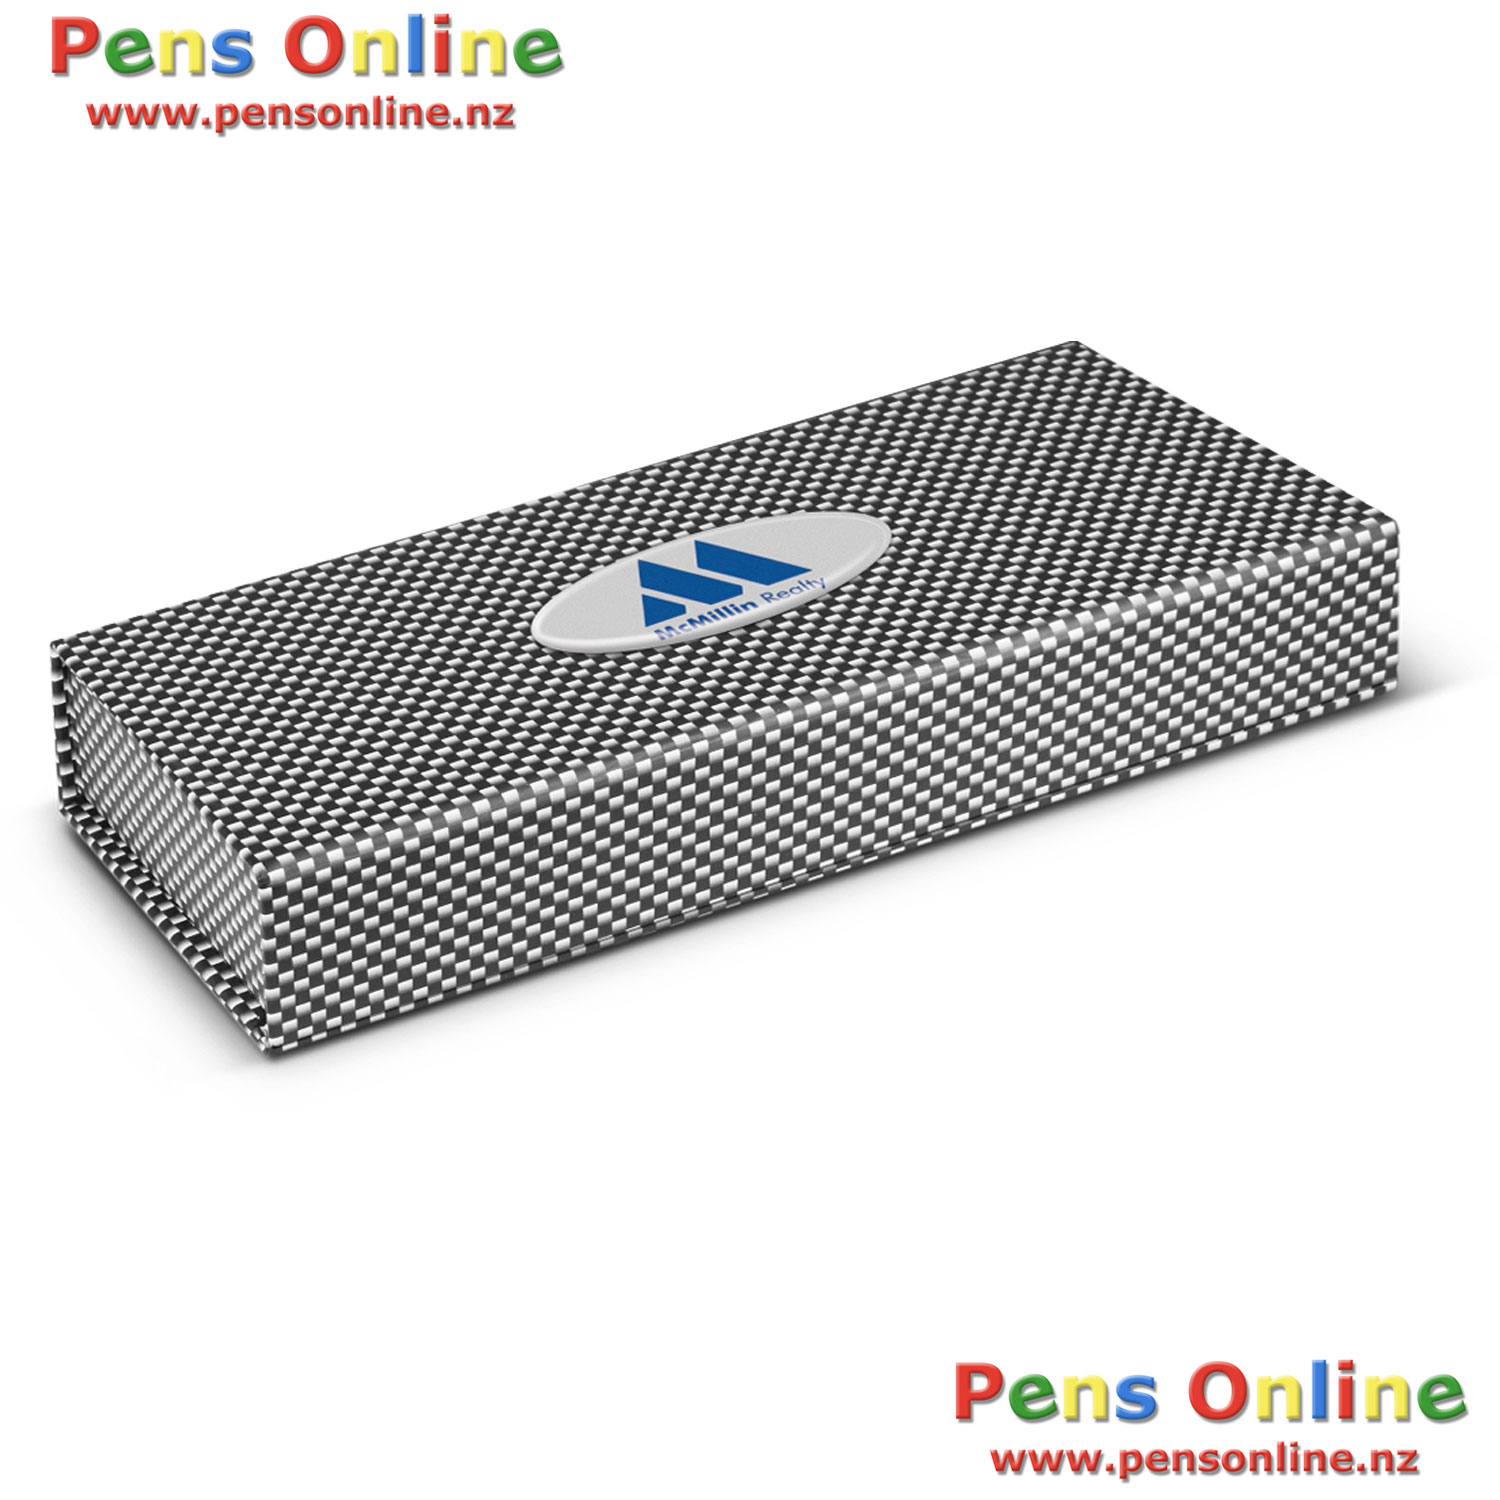 Pen Gift Boxes - Luxury Flat-Top Gift Boxes - Carbon fibre - Carbon Fiber - with Resin-Coated Label